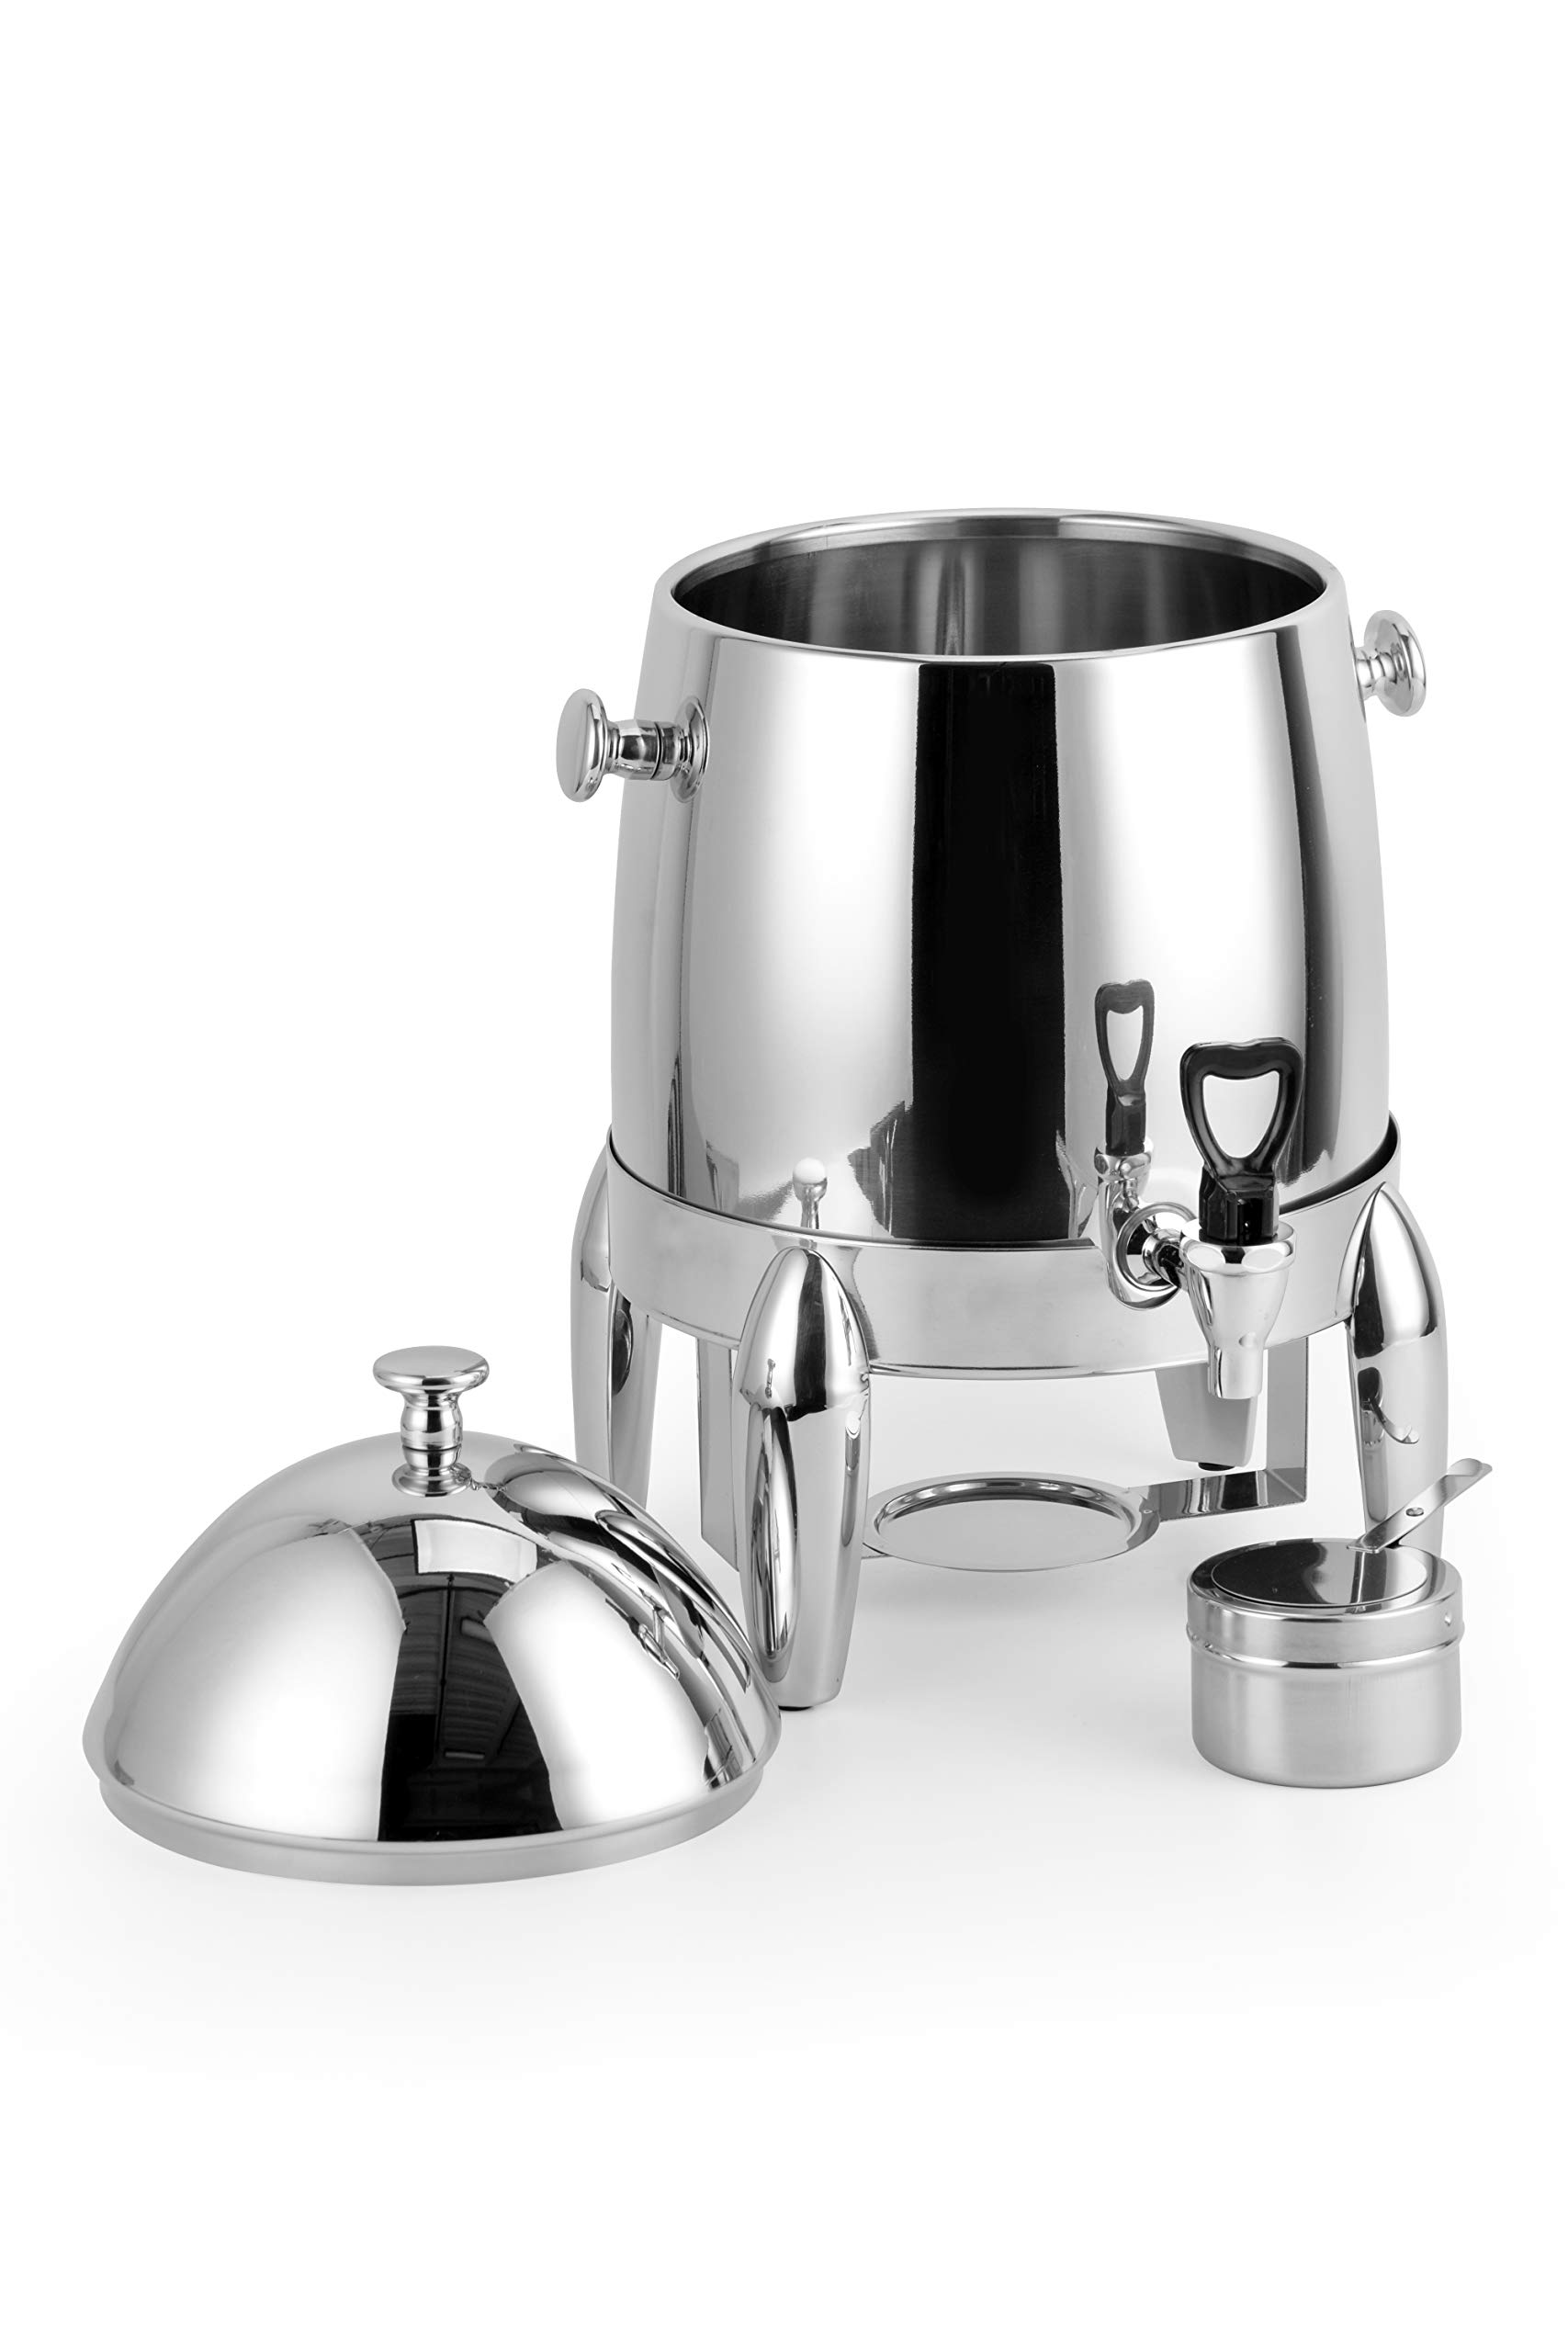 ChefMaid Extra heavy coffee urn 3 Gallon capacity - durable and long-lasting - stainless H/D base - includes a fuel holder - shiny silver surface by ChefMaid (Image #3)